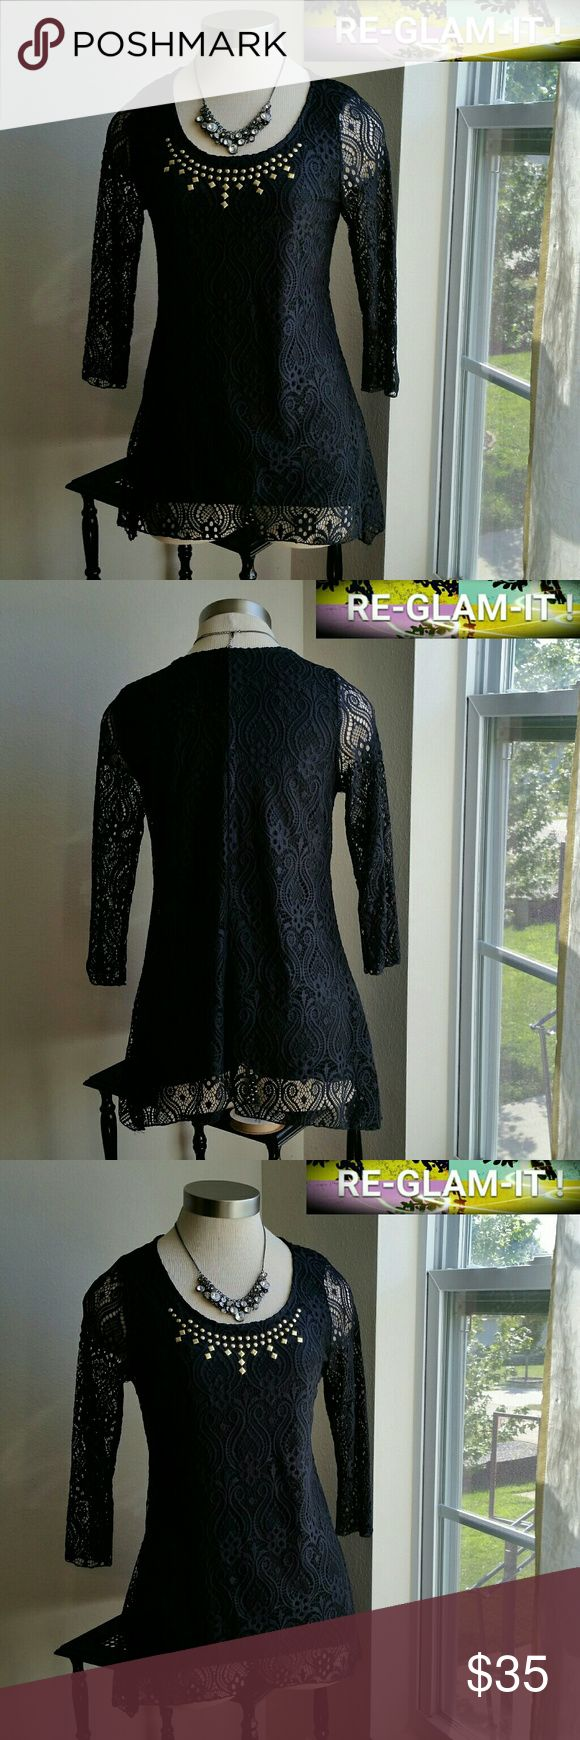 BRITTANY BLACK. ..NEW LISTING ..GORGEOUS TOP ...ADDING INFO SOON..EXCELLENT CONDITION...NORMAL WEAR...NO FLAWS..CROCHET DESIGN THROUGHOUT...LOOSE FEEL BRITTANY BLACK Tops Blouses